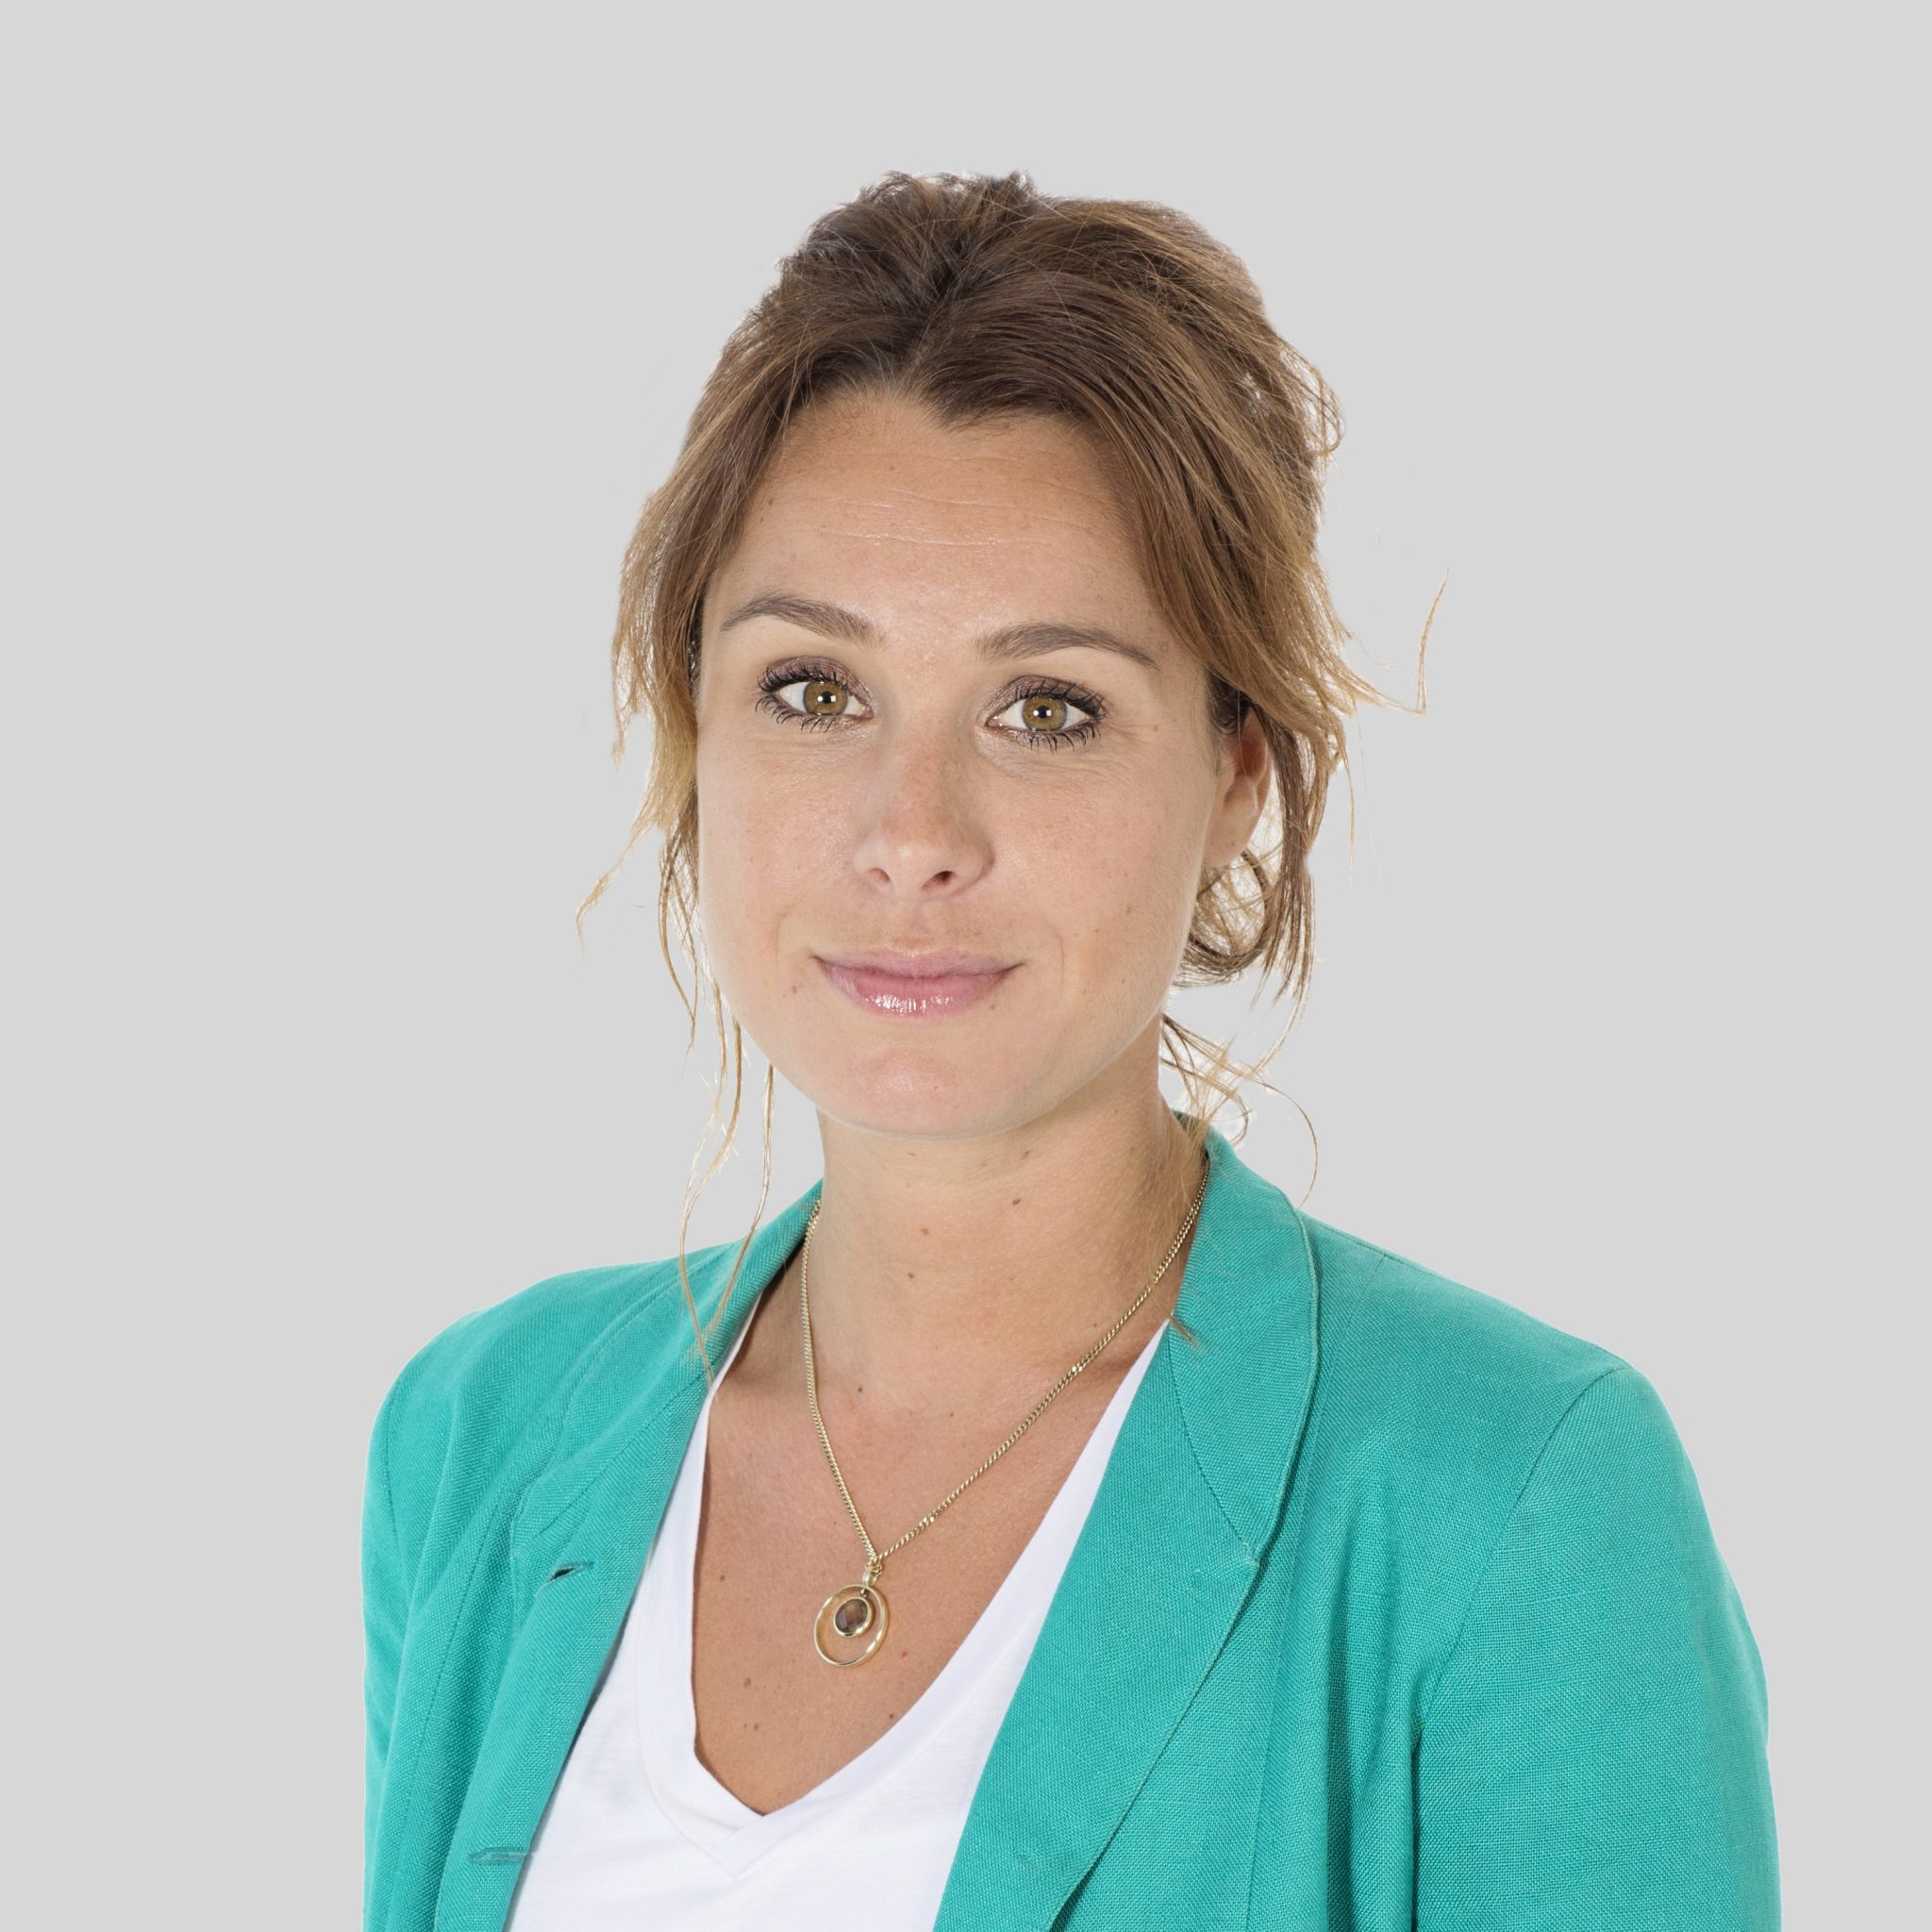 Vacature Senior Manager - Been Management Consulting - Nina Jongkind